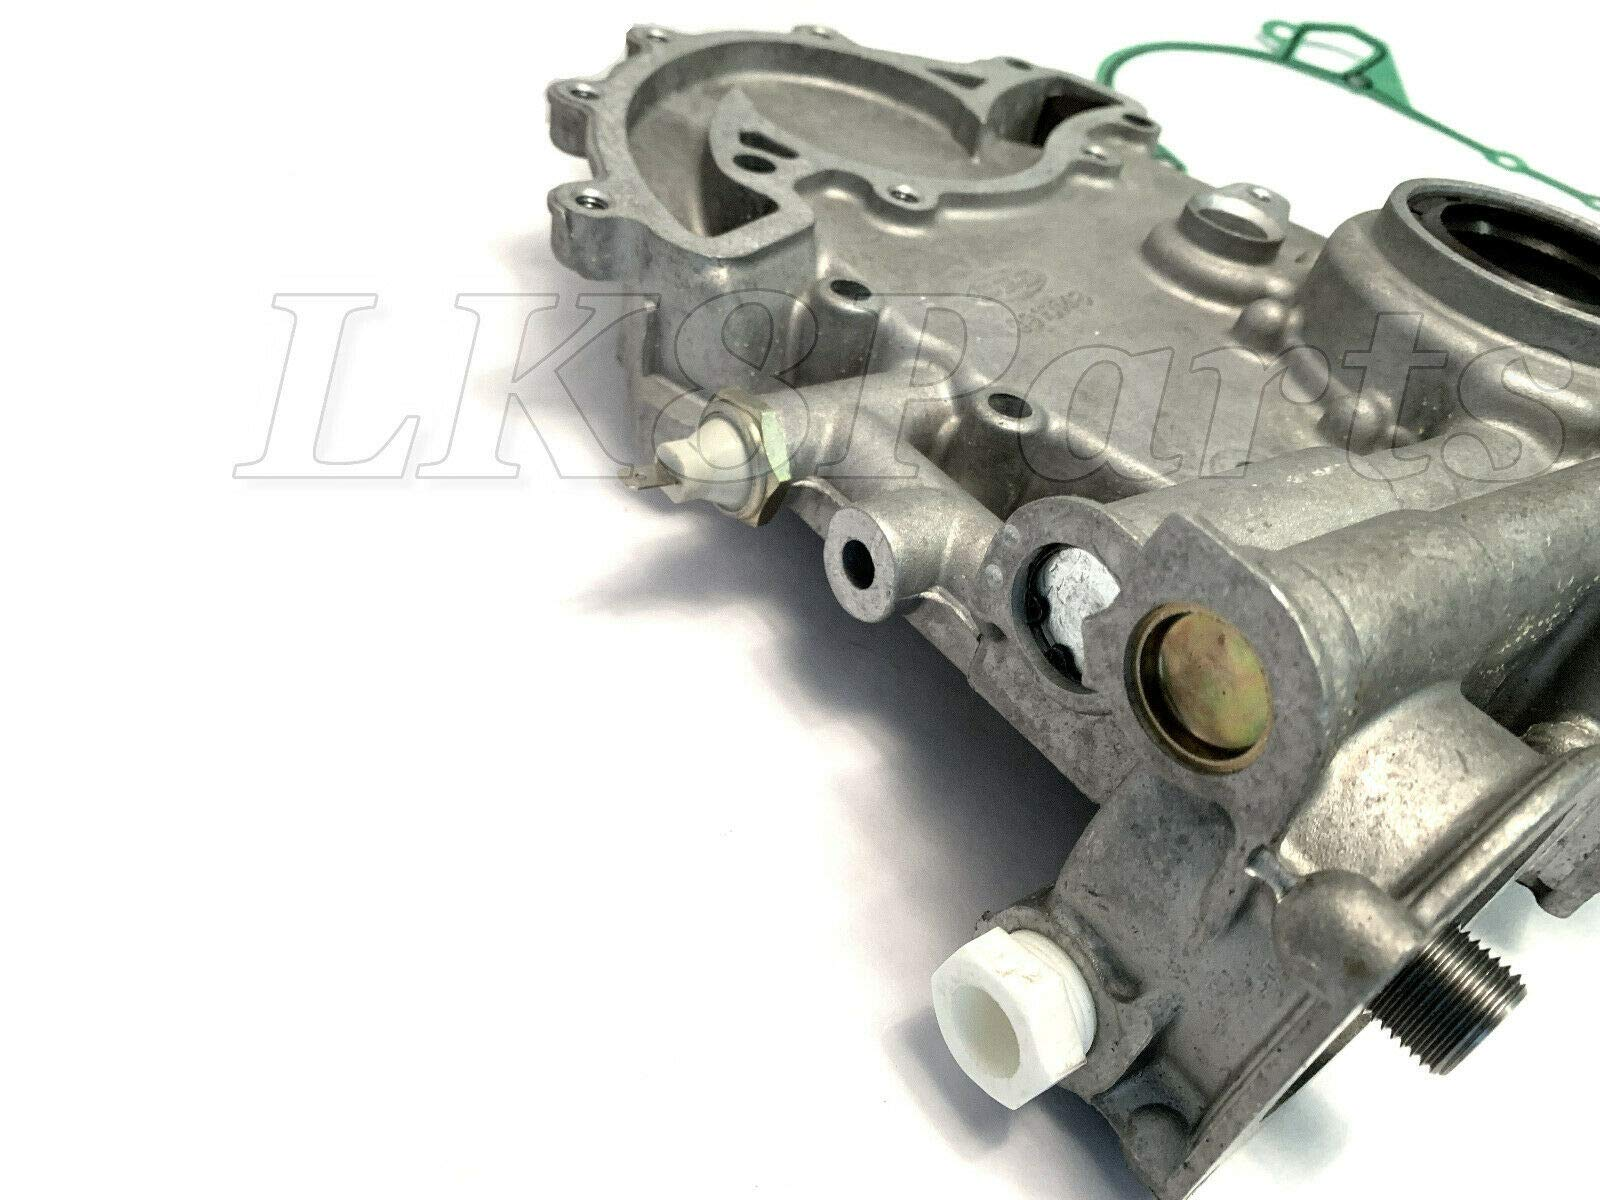 RANGE ROVER P38 95-99 DISCOVERY OIL PUMP FRONT ENGINE COVER W/GASKET ERR6438 by Proper Spec (Image #3)